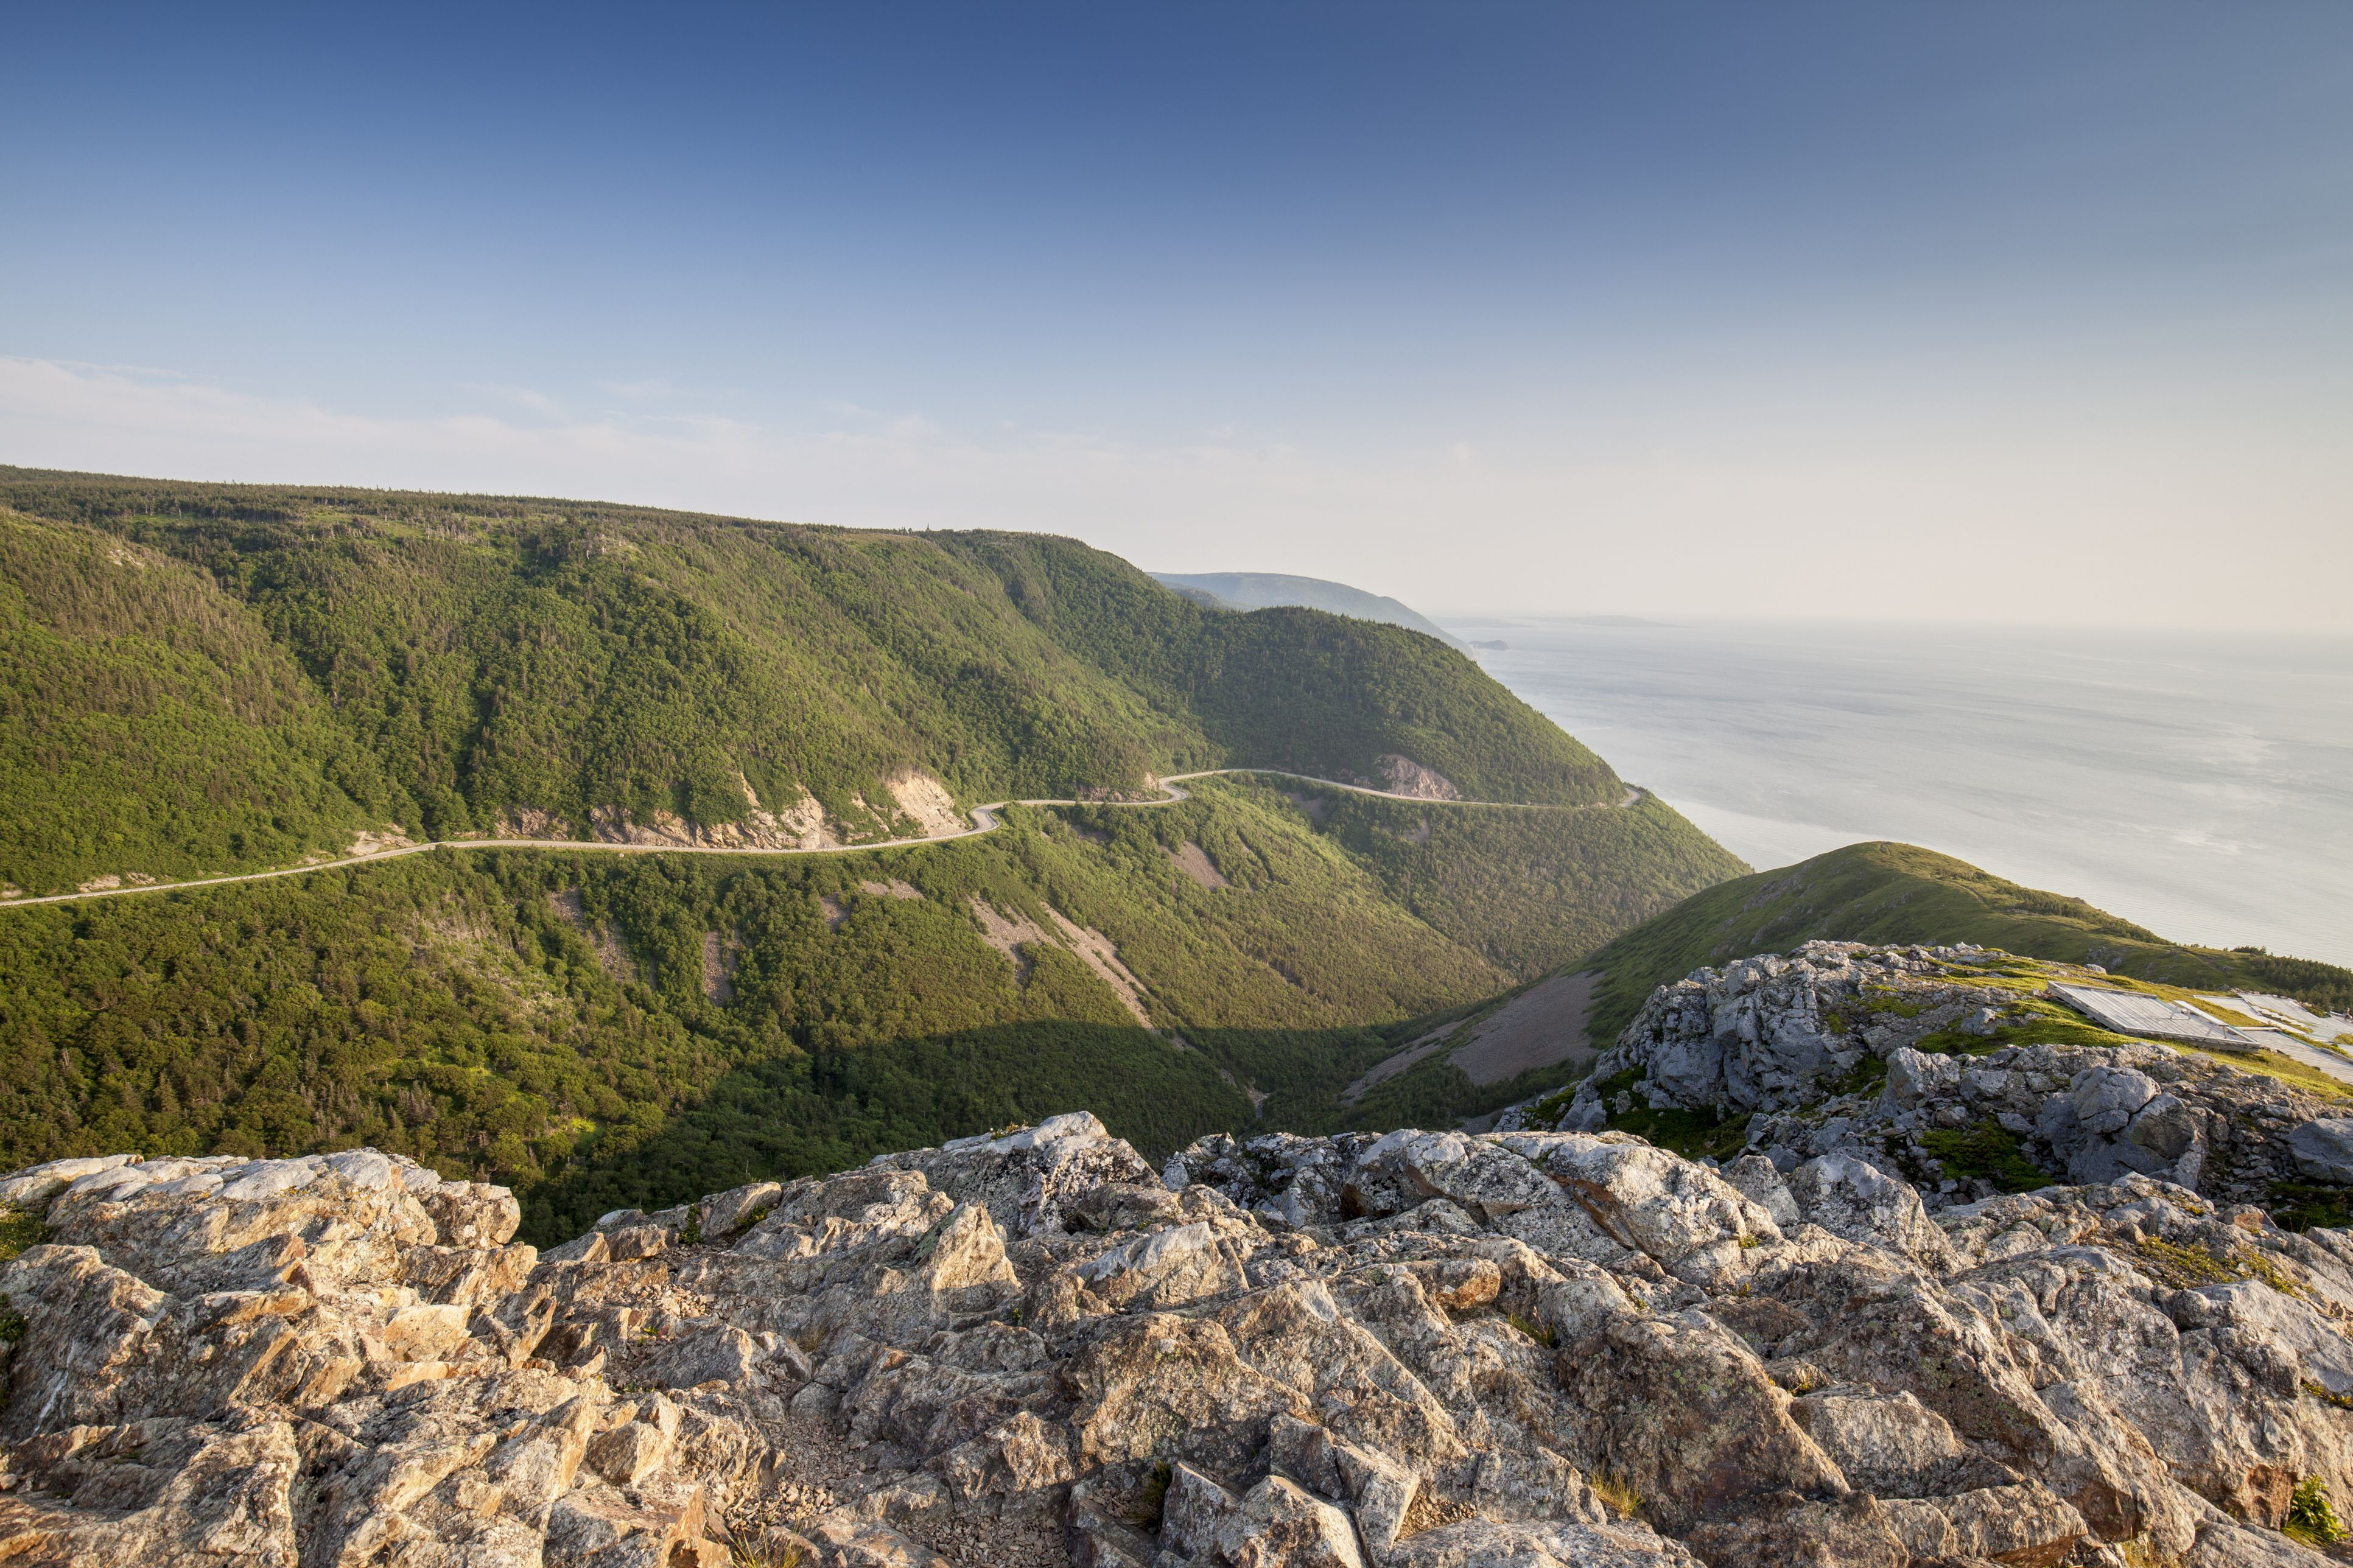 The Cabot Trail winds through the mountains in Cape Breton Highlands National Park Nova Scotia, Canada